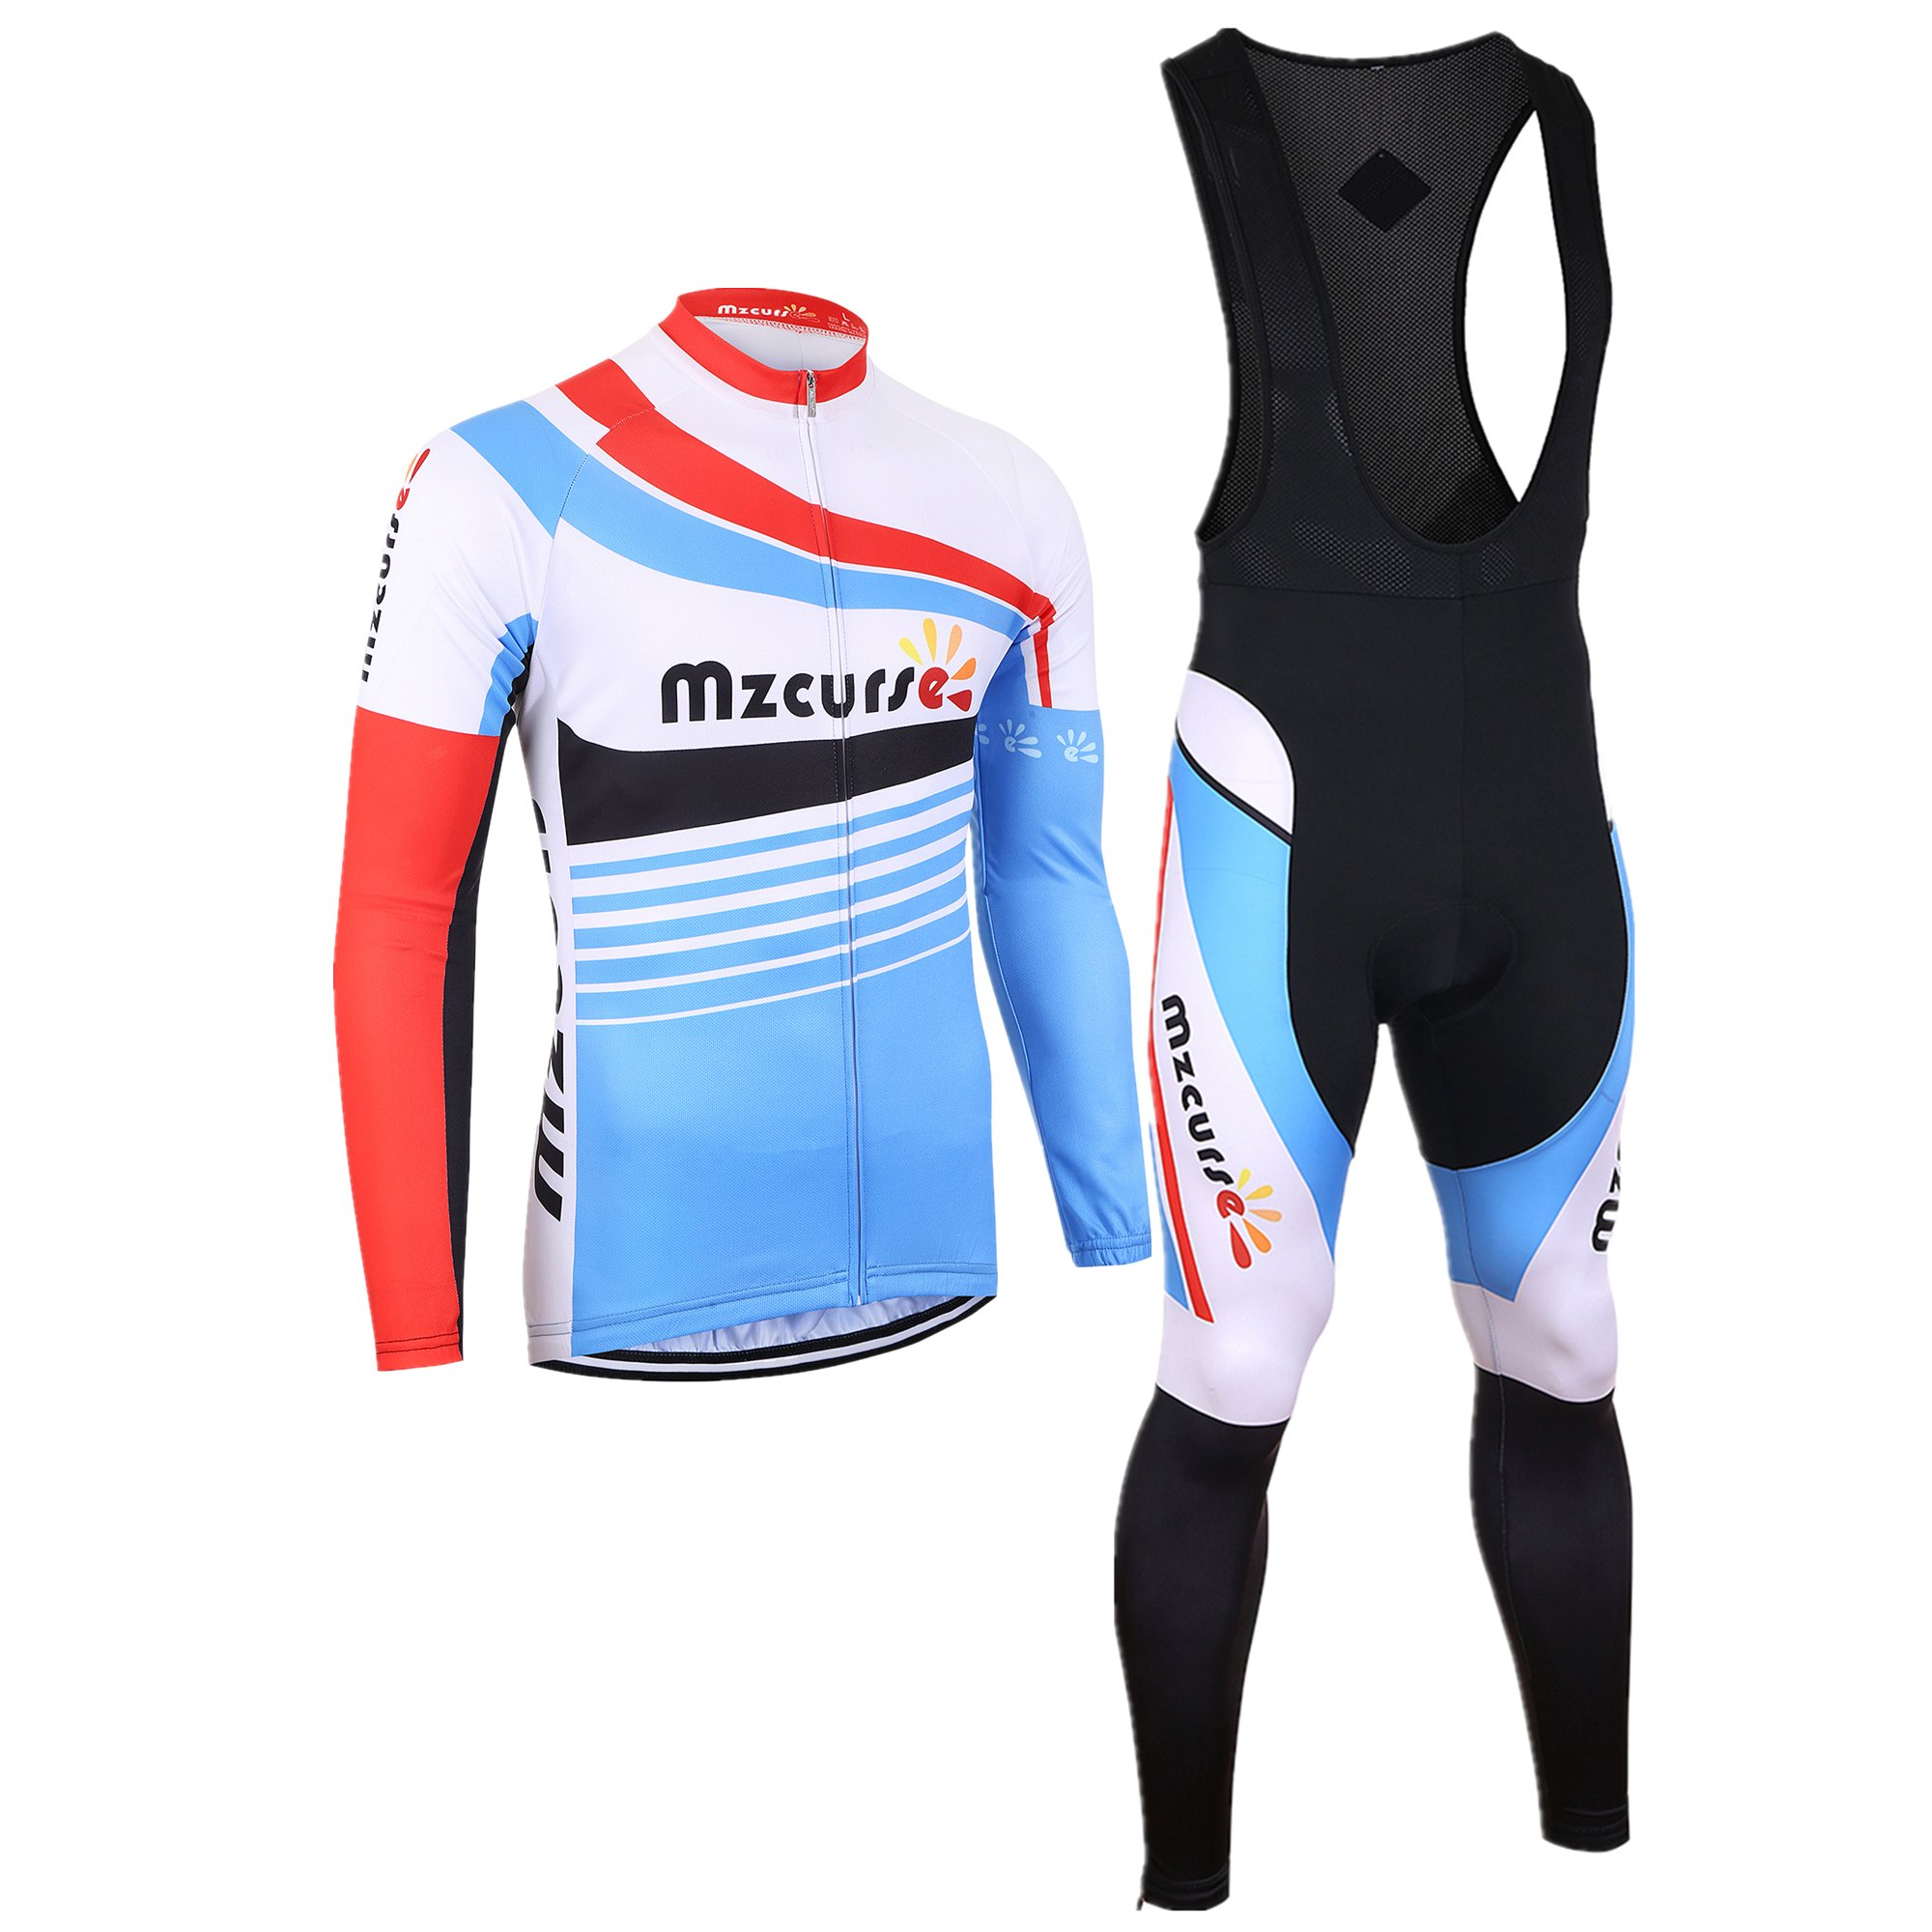 mzcurse Bicycle Bike Cycling Long Sleeve Jersey Jacket + Pants Shorts Set Skin Suits (Color Bib, Small,please check the size chart) by mzcurse